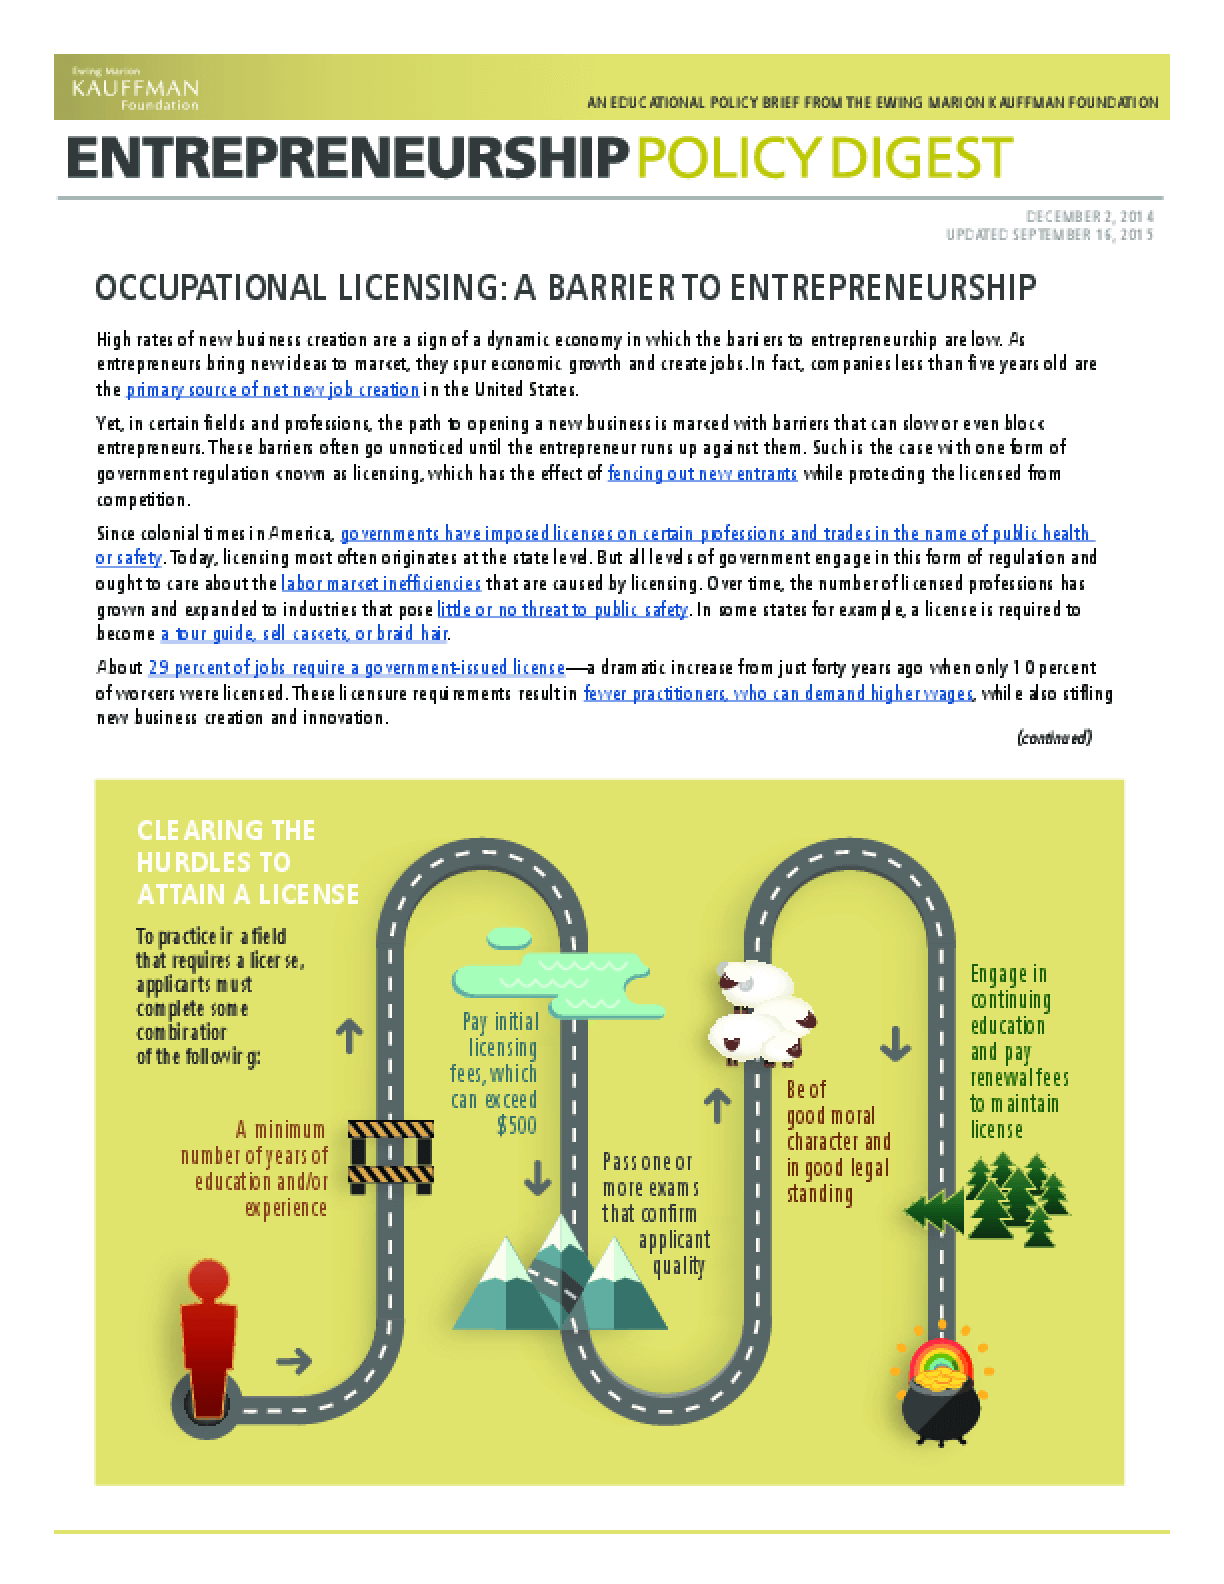 Occupational Licensing: A Barrier To Entrepreneurship